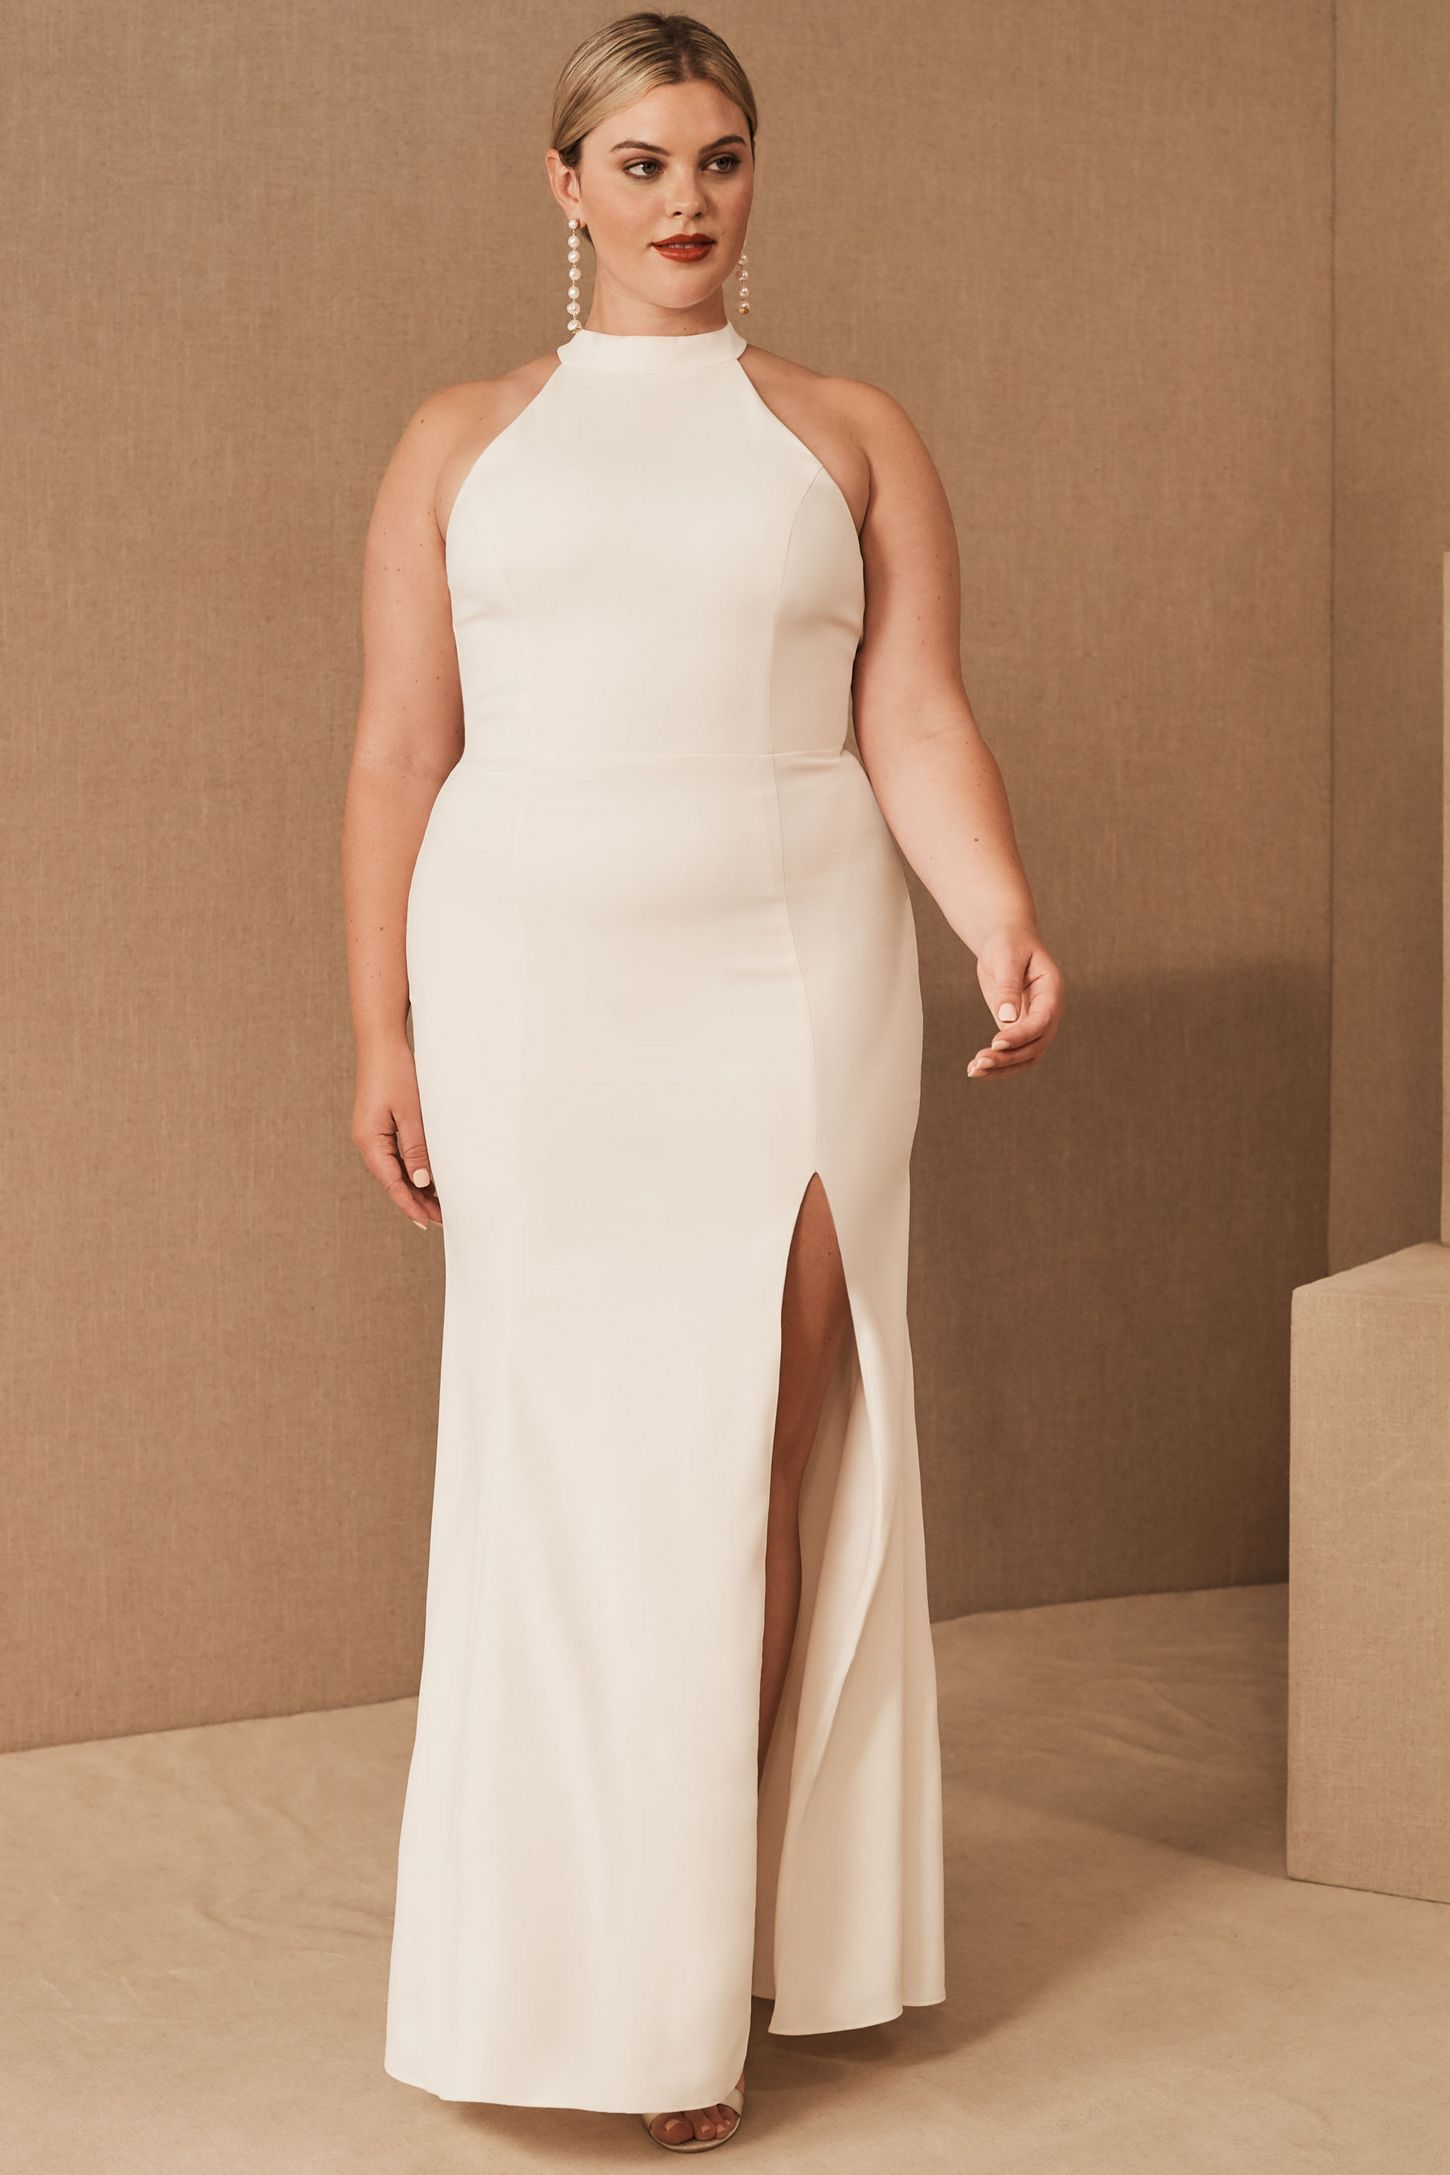 581e4c1ea78 Wedding Dress Boutiques In Montreal - Gomes Weine AG